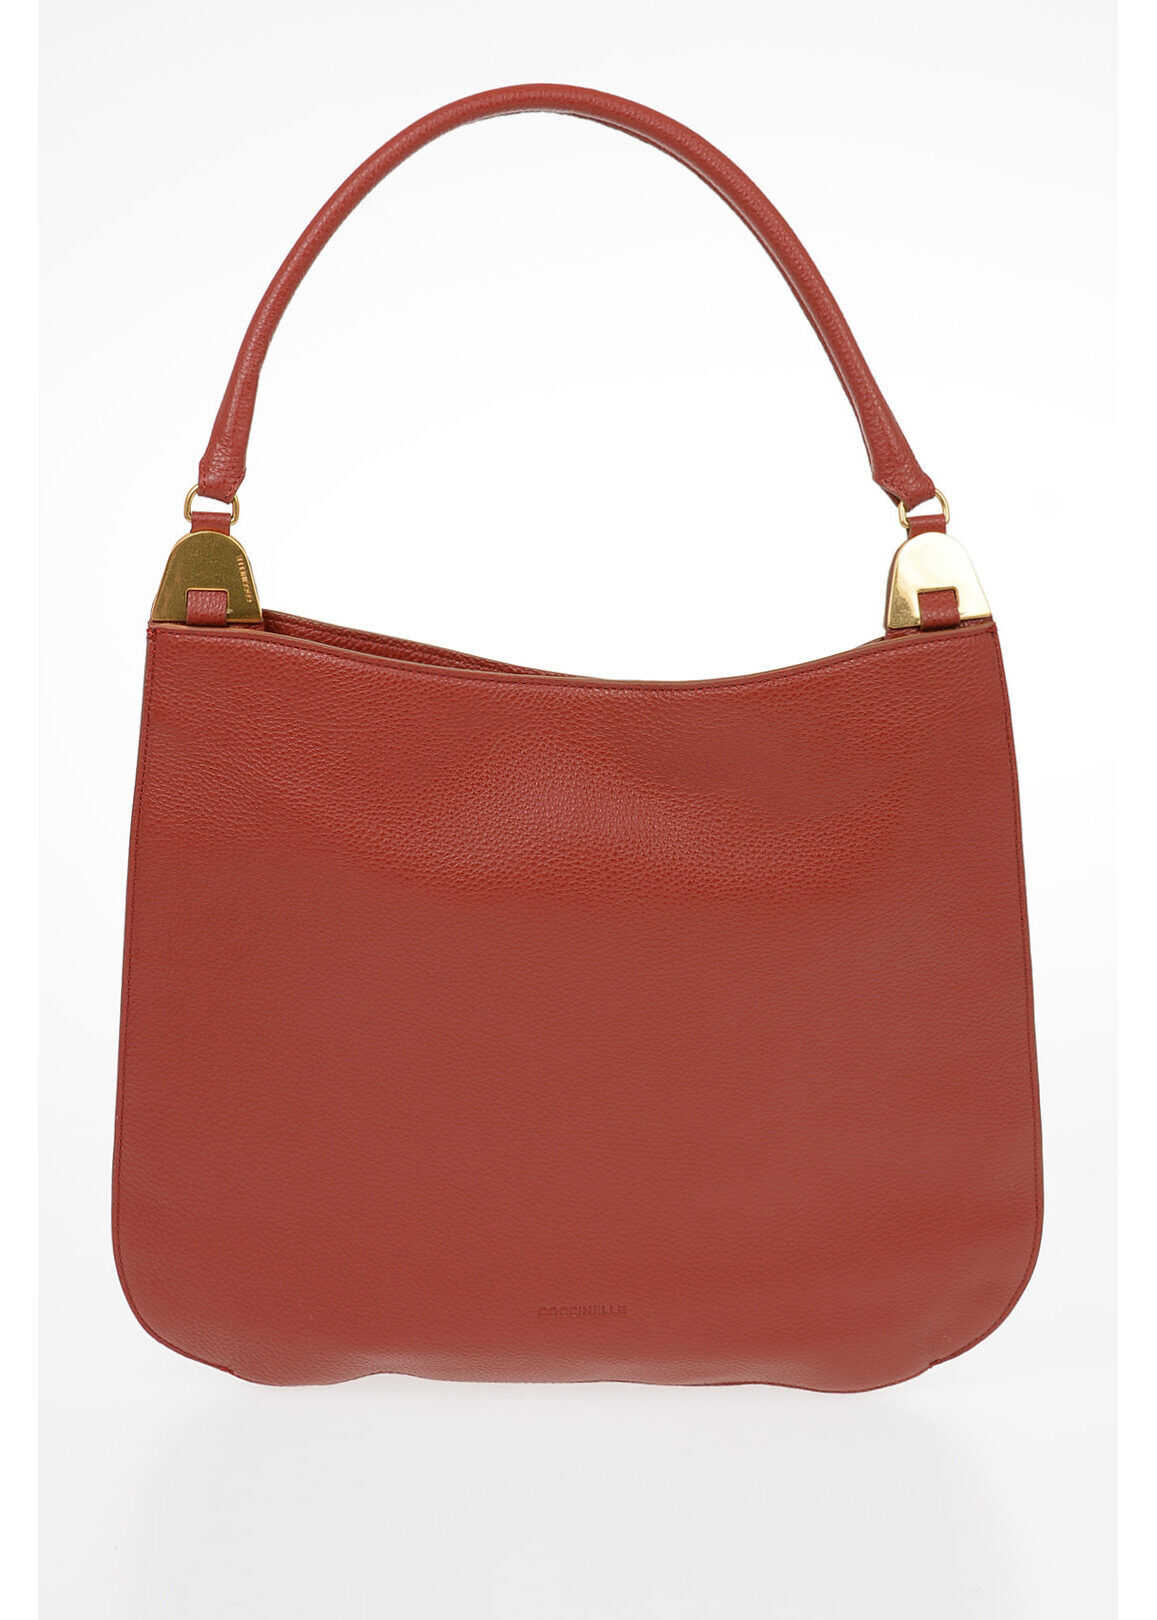 Coccinelle Leather ANAIS Hand Bag RED imagine b-mall.ro